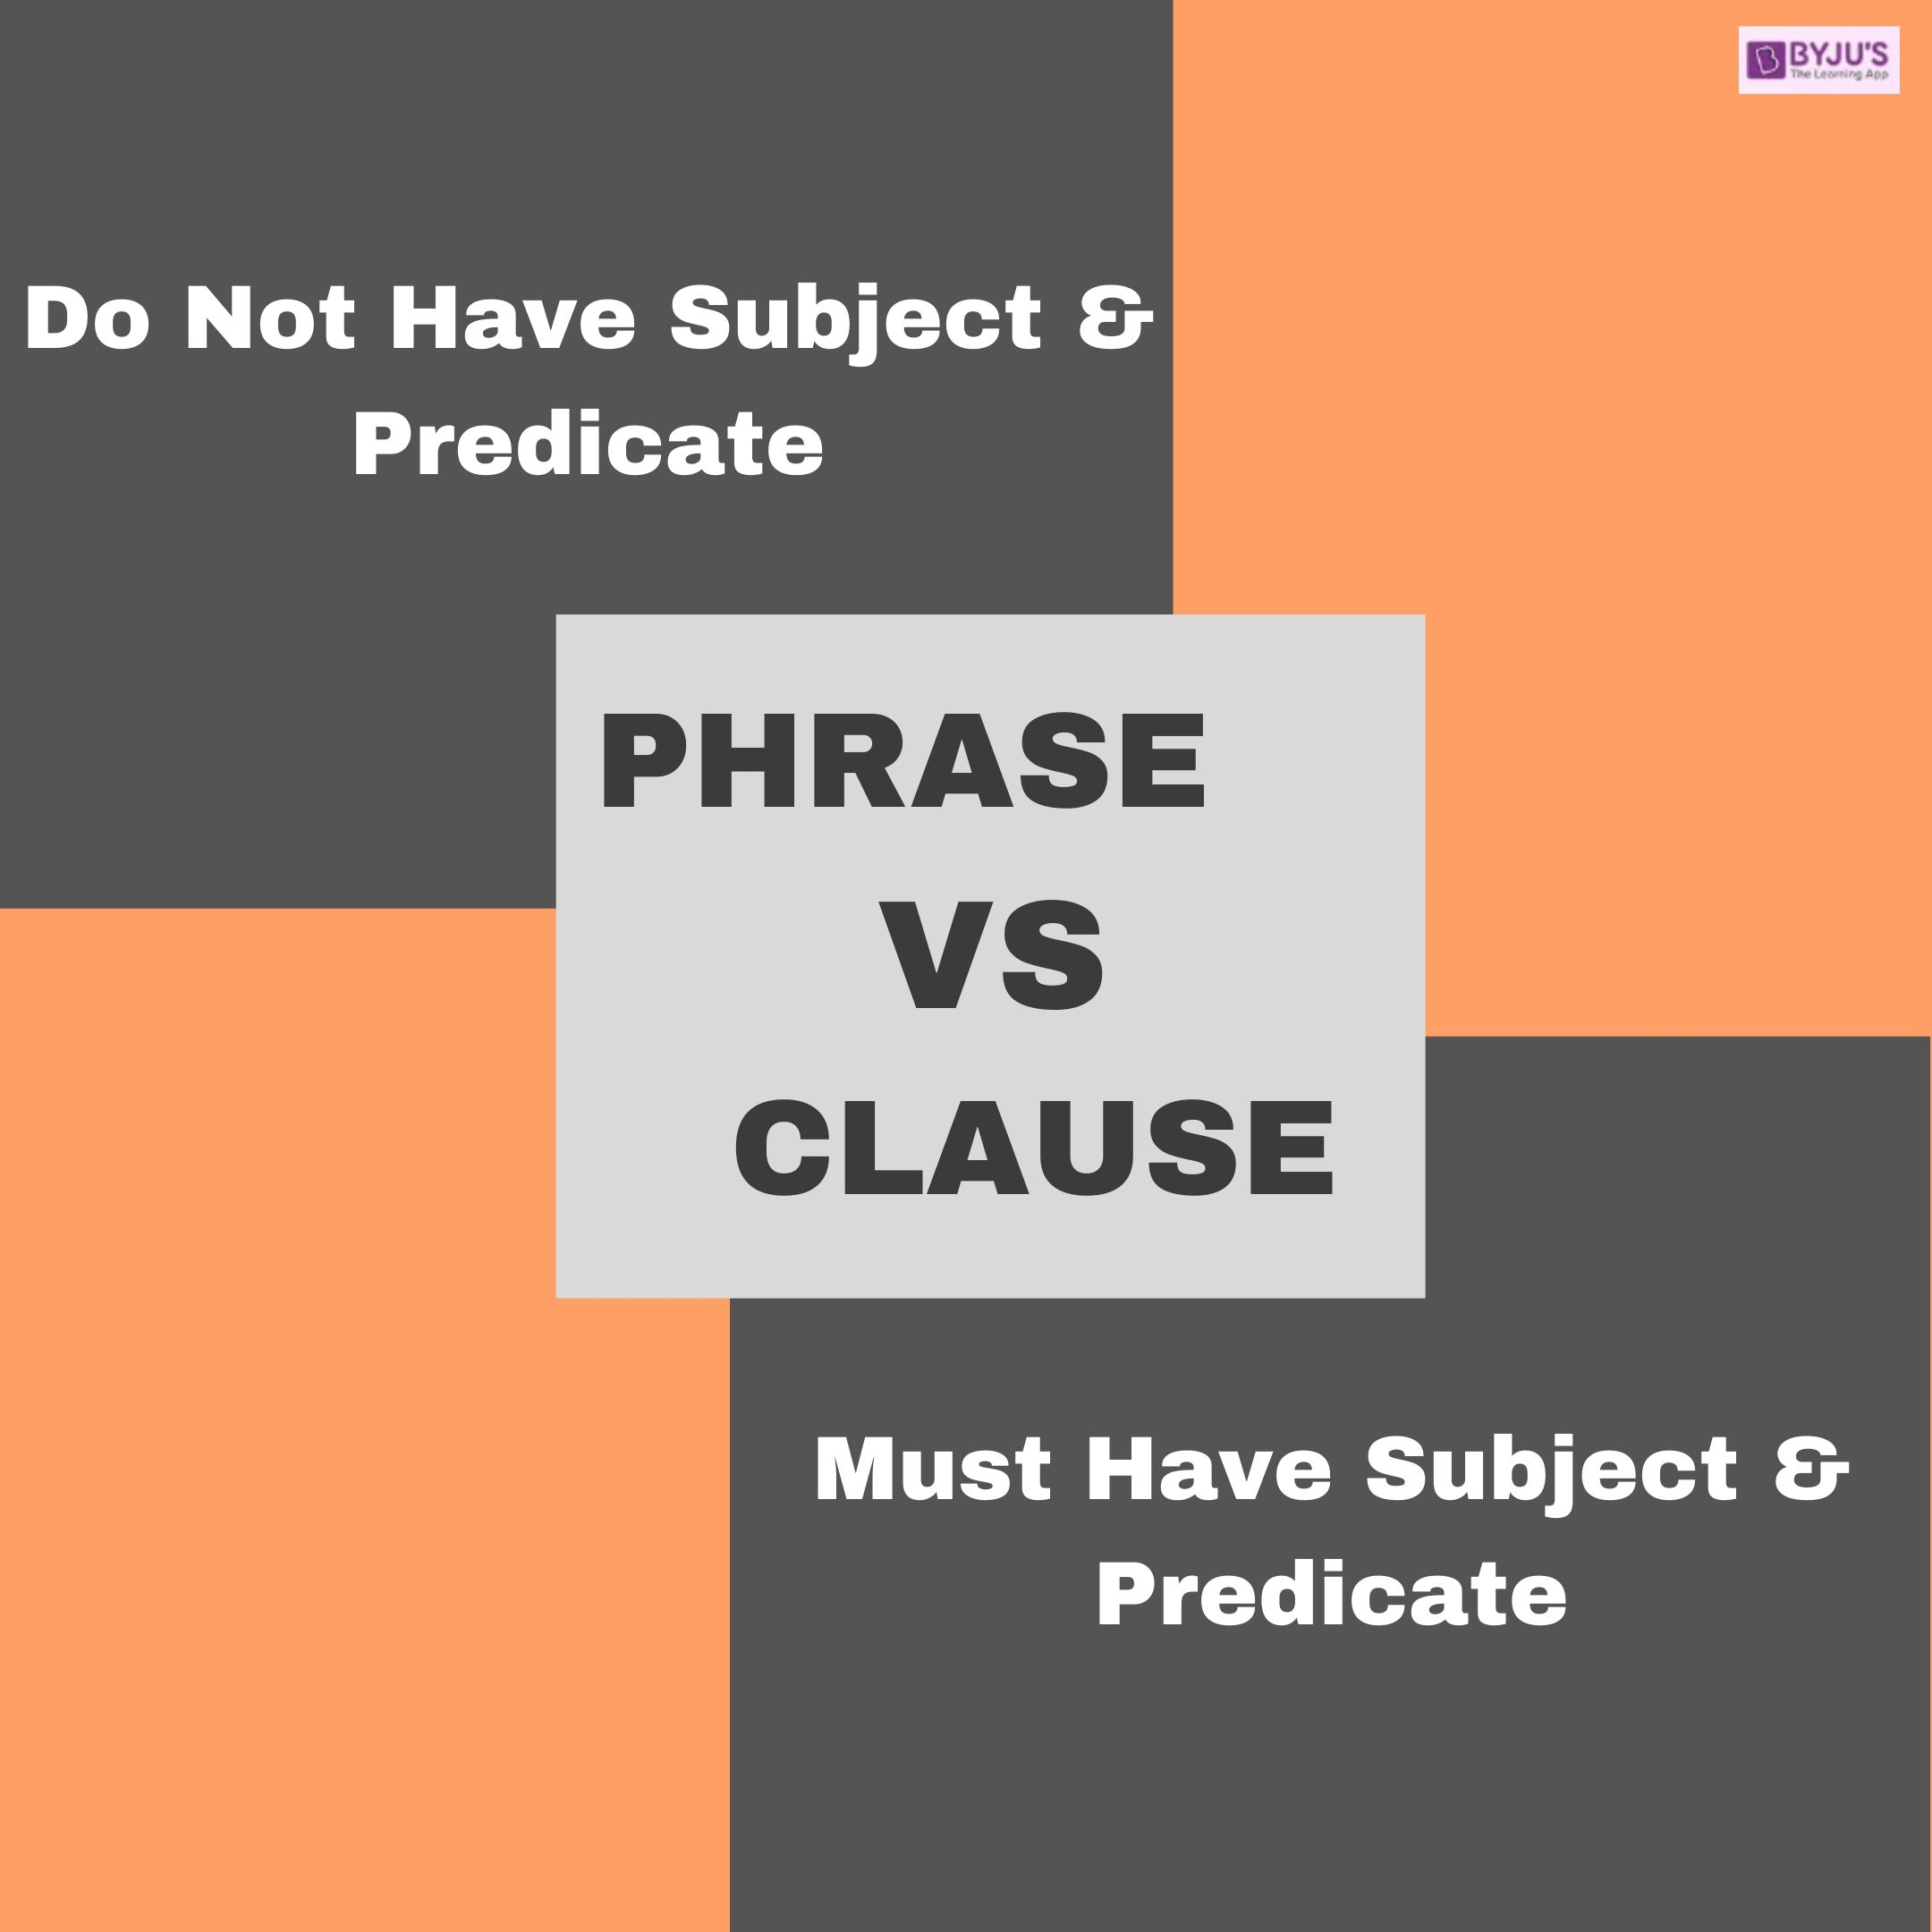 Phrase VS Clause